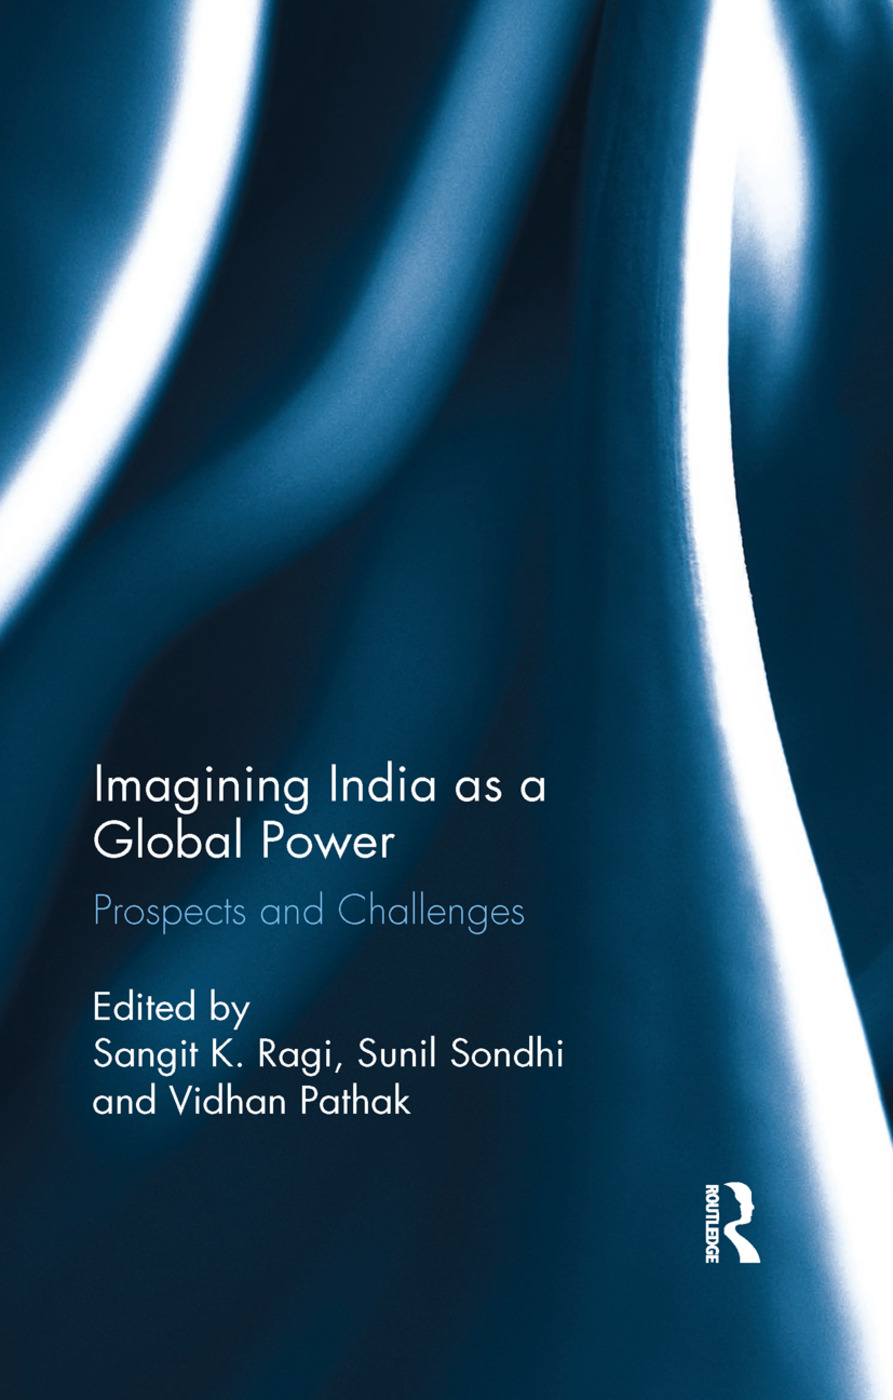 Imagining India as a Global Power: Prospects and Challenges book cover